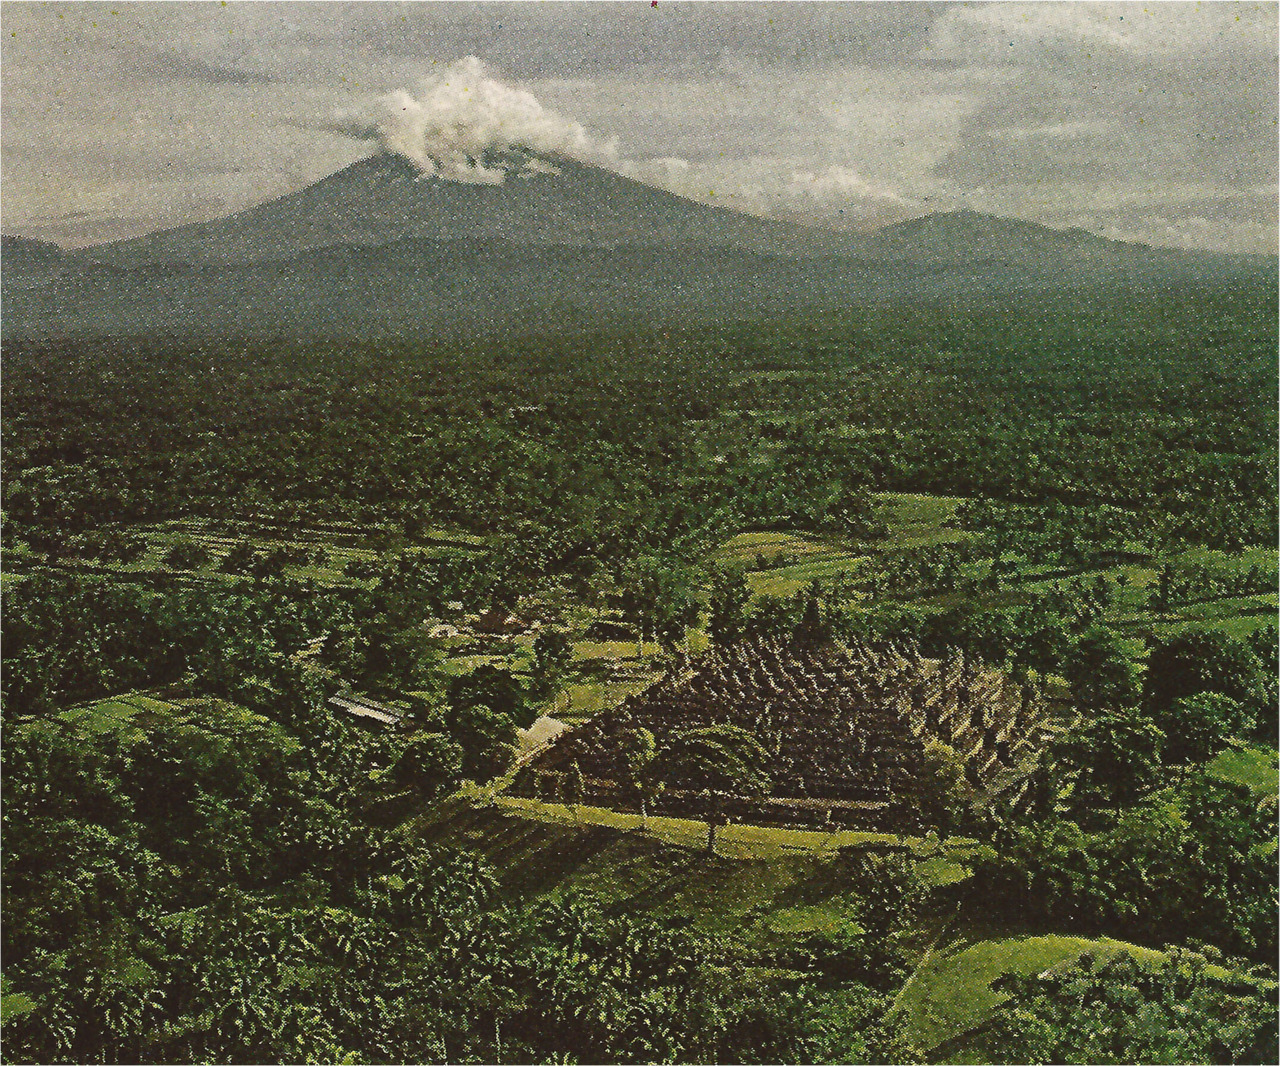 """Monks converge annually at the Borobudur shrine to commemorate the three most important events in Buddha's life - his birth, his enlightenment and his death."" (National Geographic, 1971)"